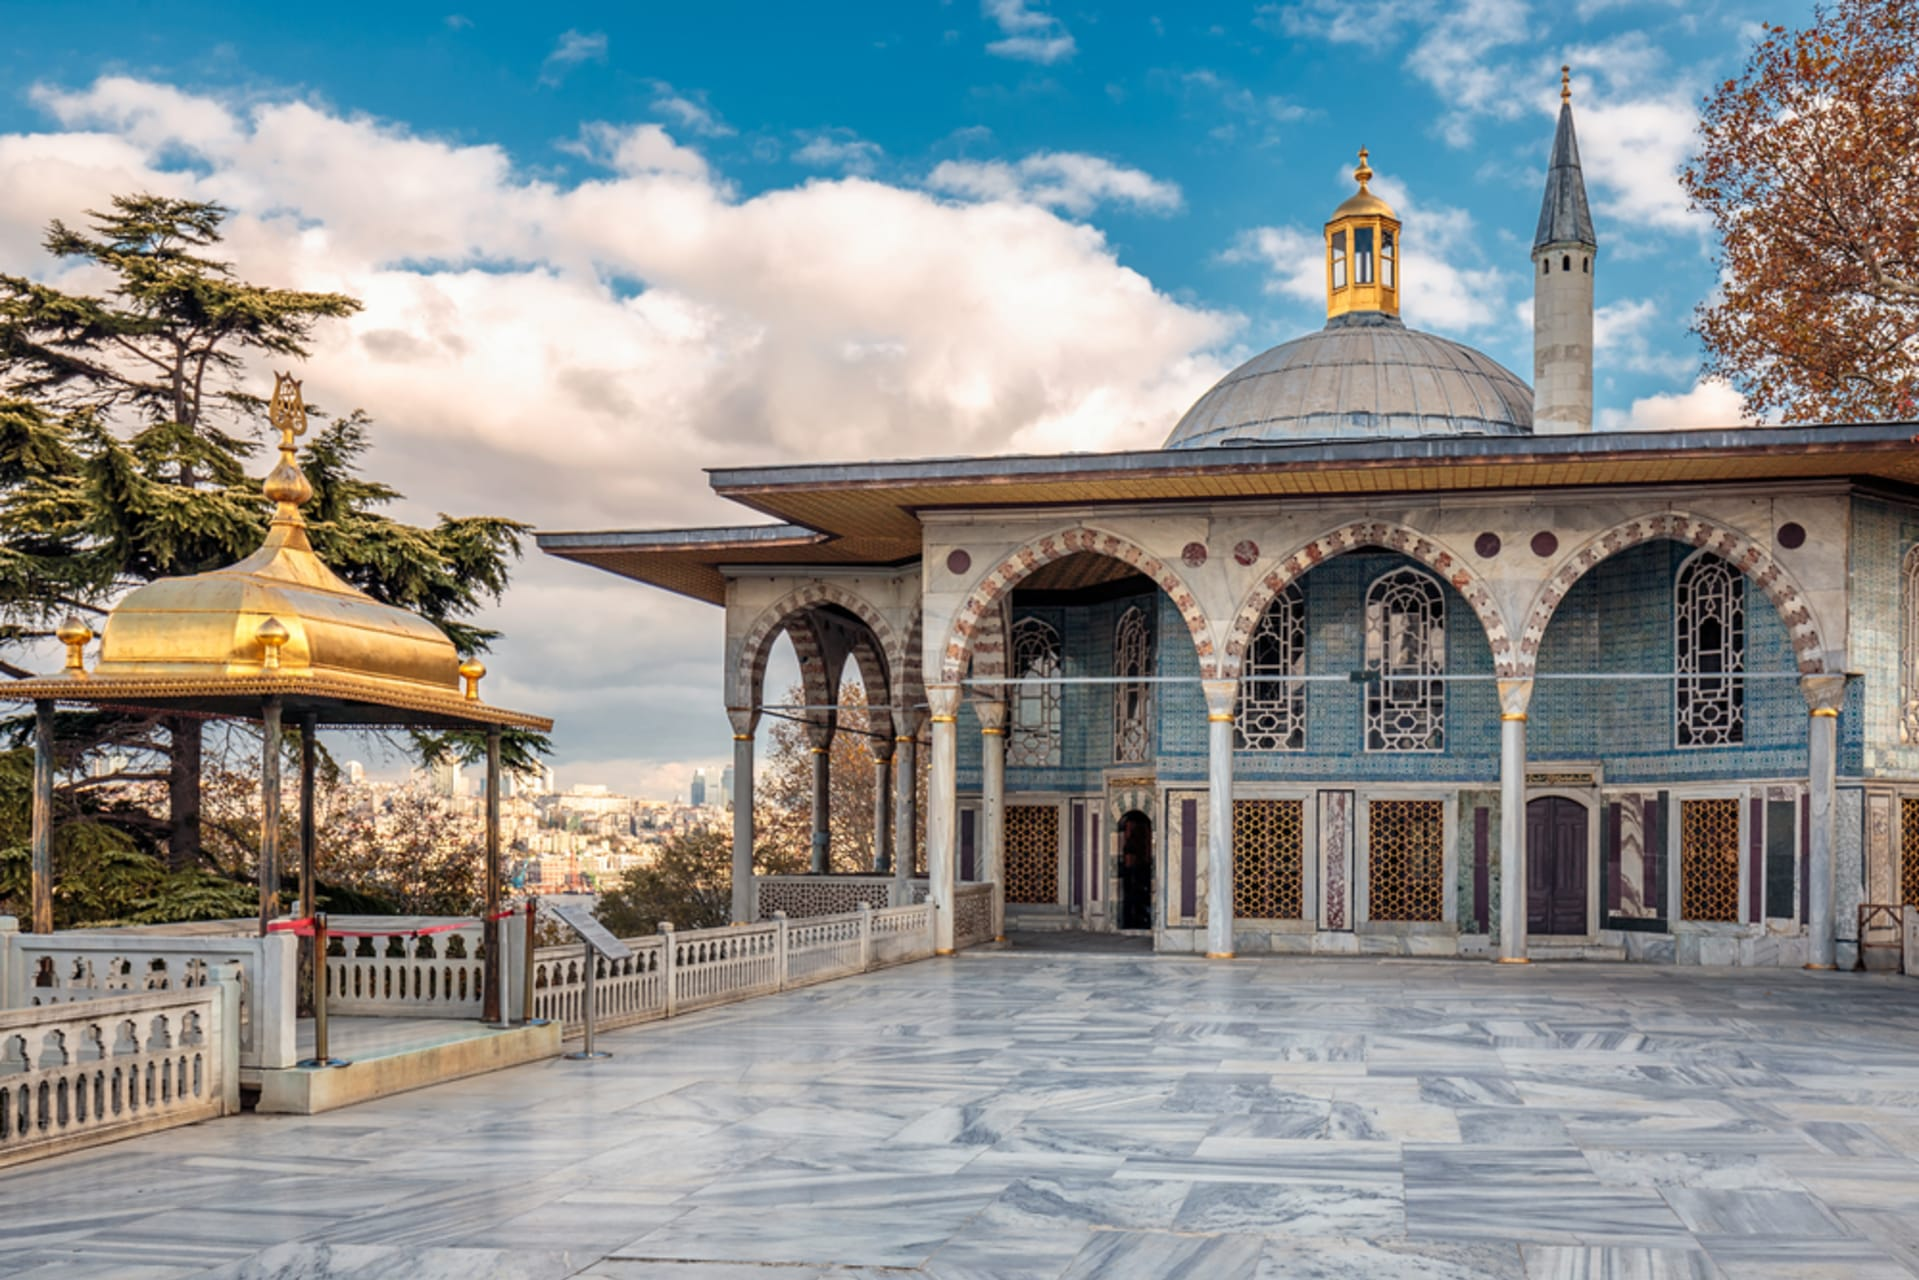 Istanbul - Topkapi Palace- Home of Sultans and Concubines